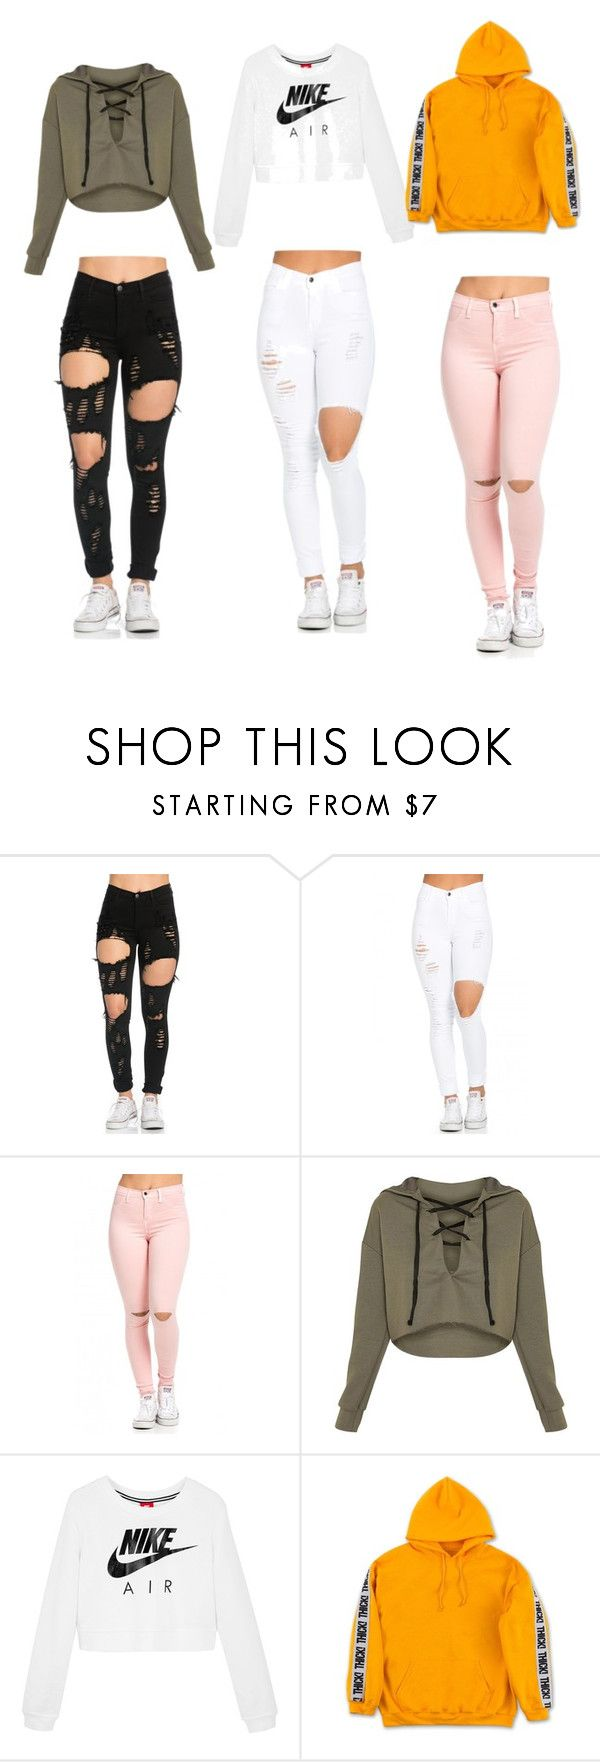 Untitled #15 by carolinevcm on Polyvore featuring NIKE